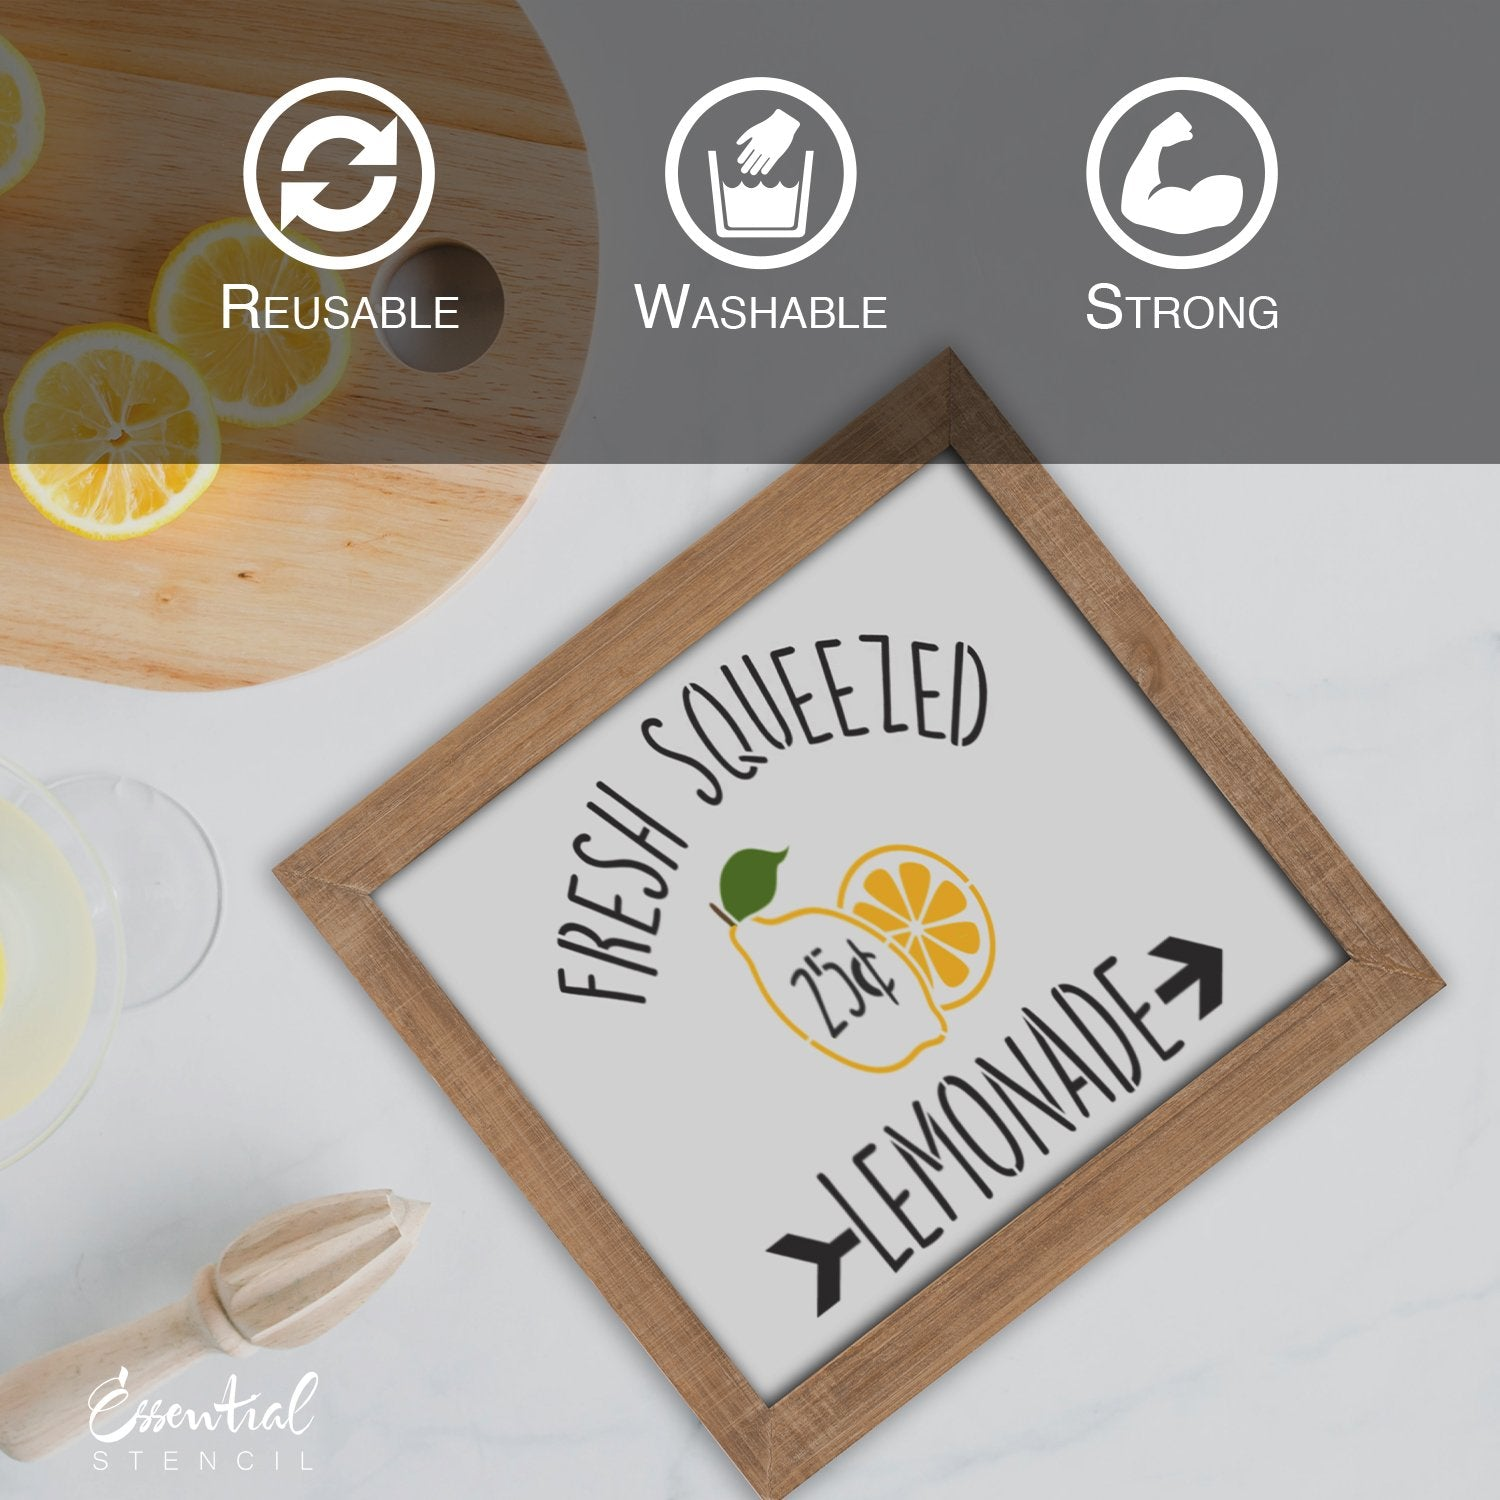 DIY reusable lemon stencils, lemons sign stencils, easy peasy lemon squeezy sign stencil, you are my main squeeze sign stencil, fresh squeezed lemonade sign stencil, DIY lemonade signs